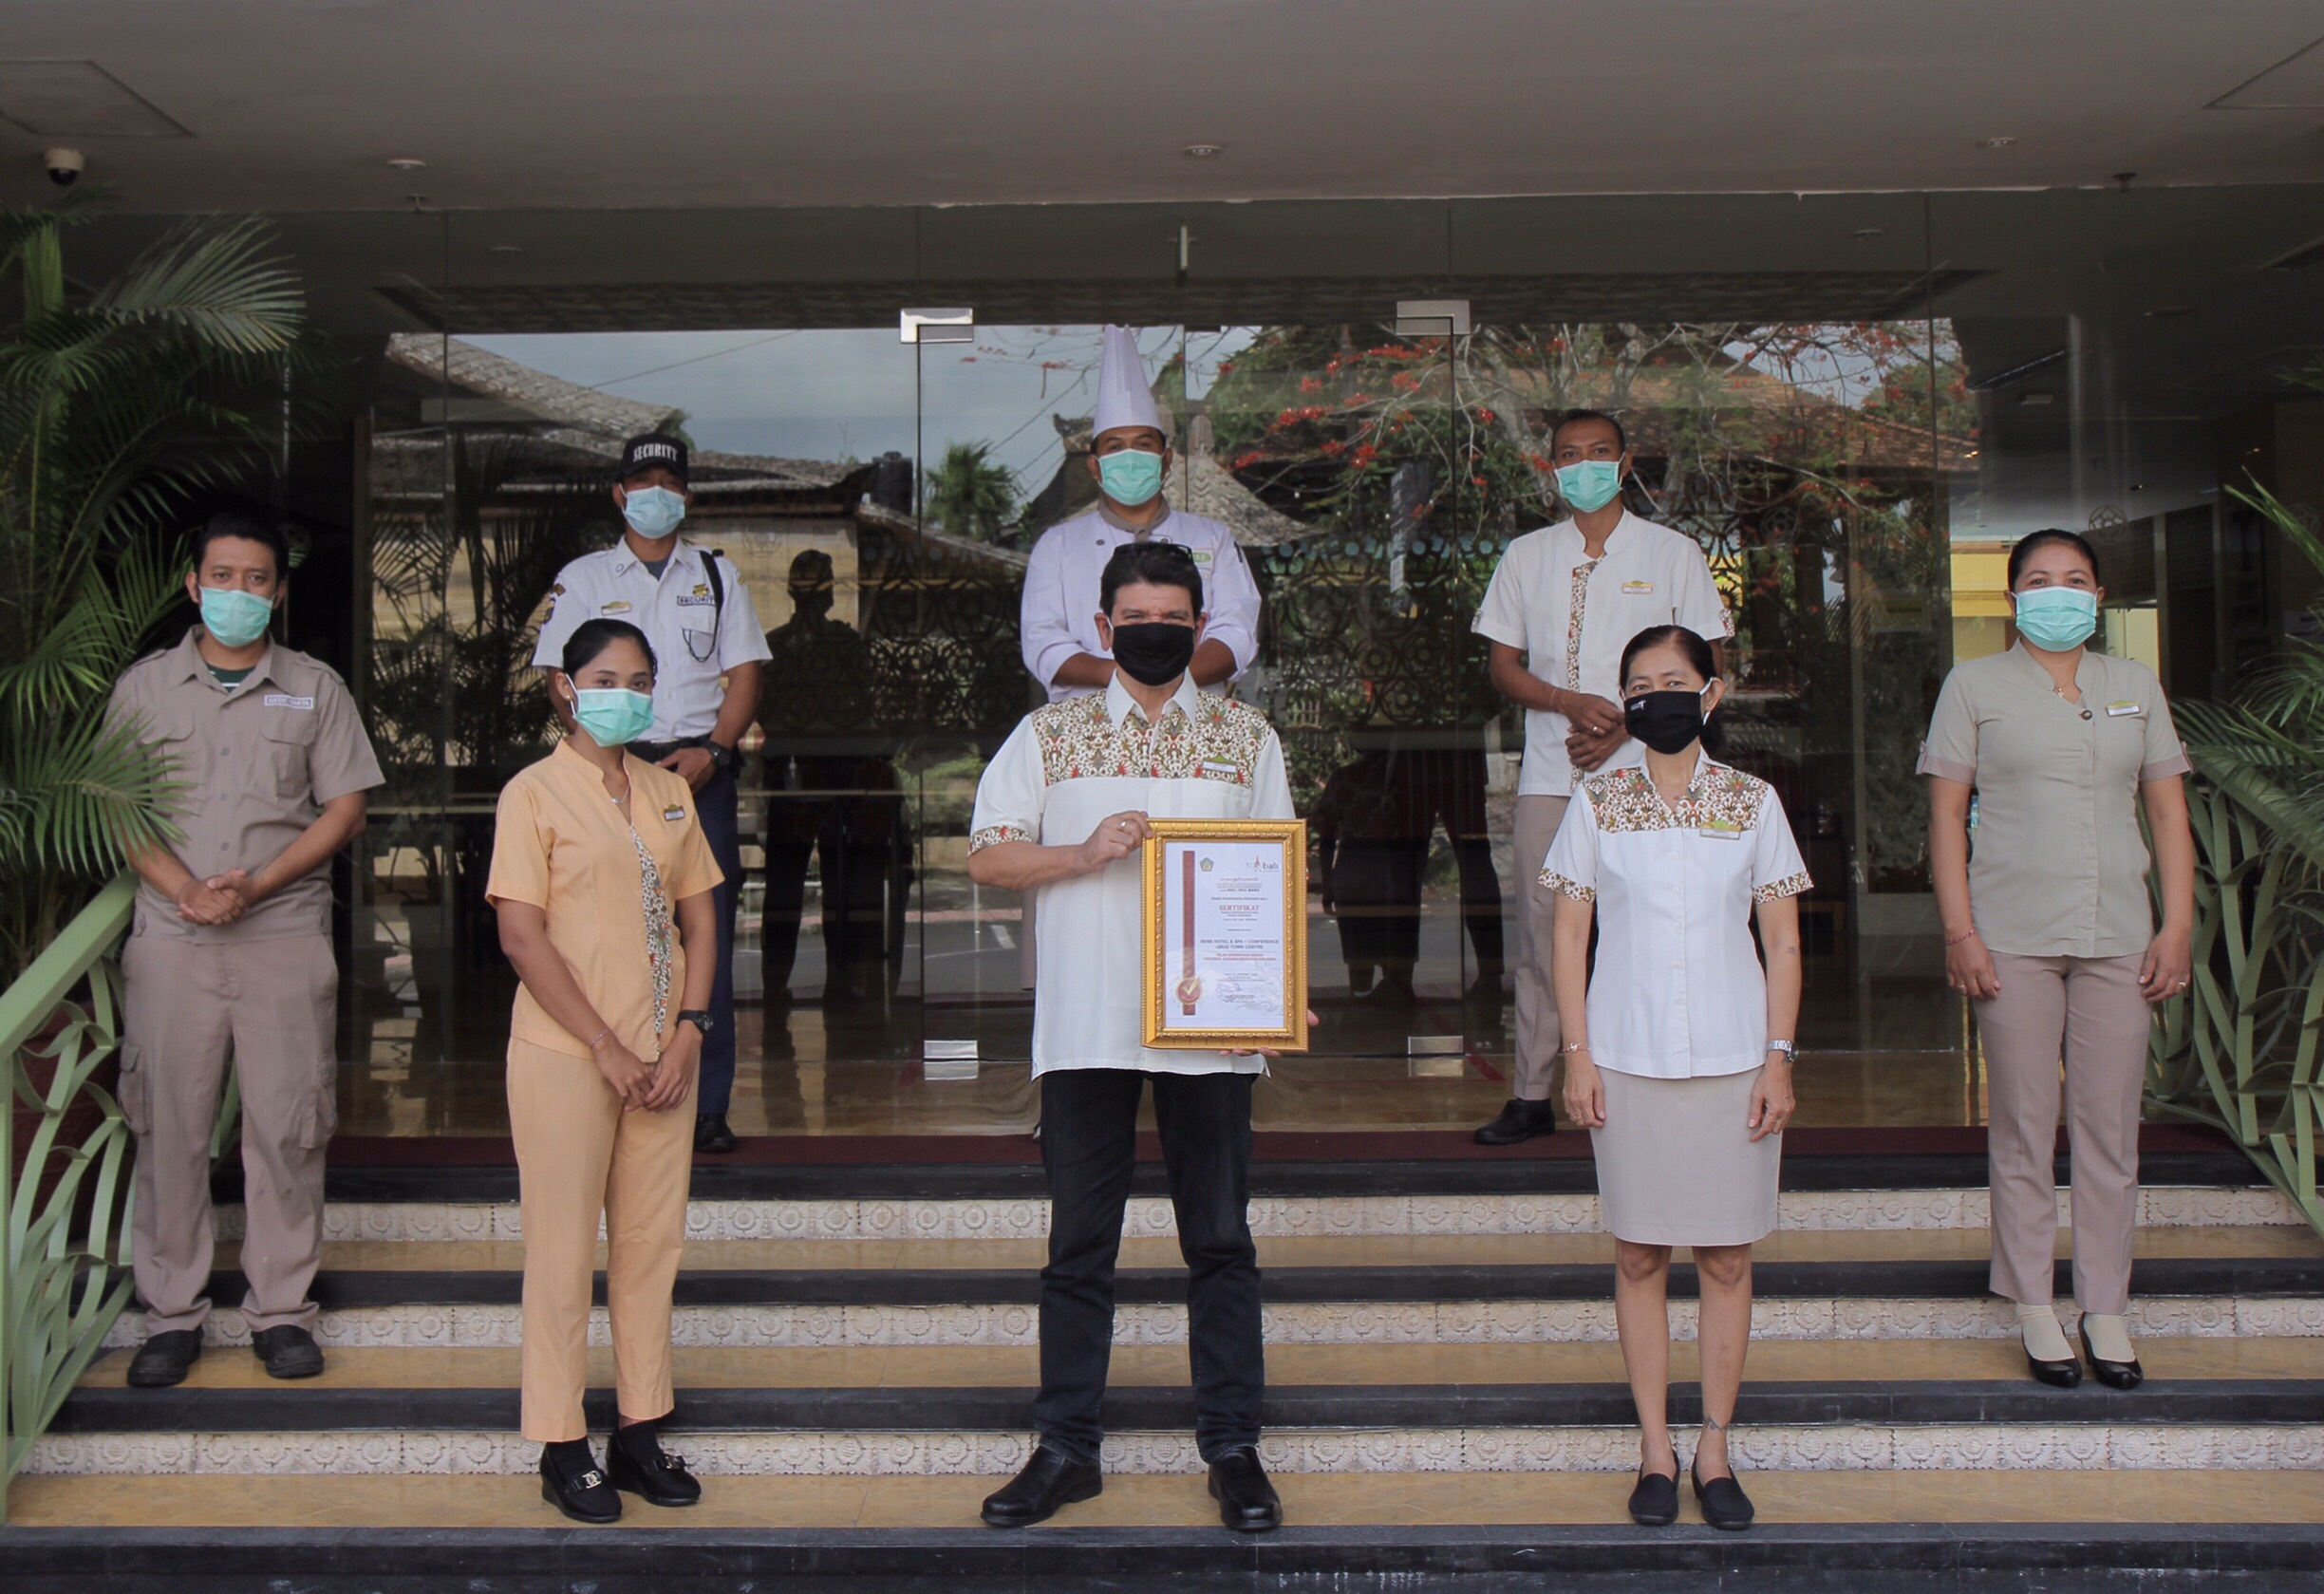 https://highend-traveller.com/sens-hotel-spa-has-received-the-new-normal-certification-from-the-bali-government/